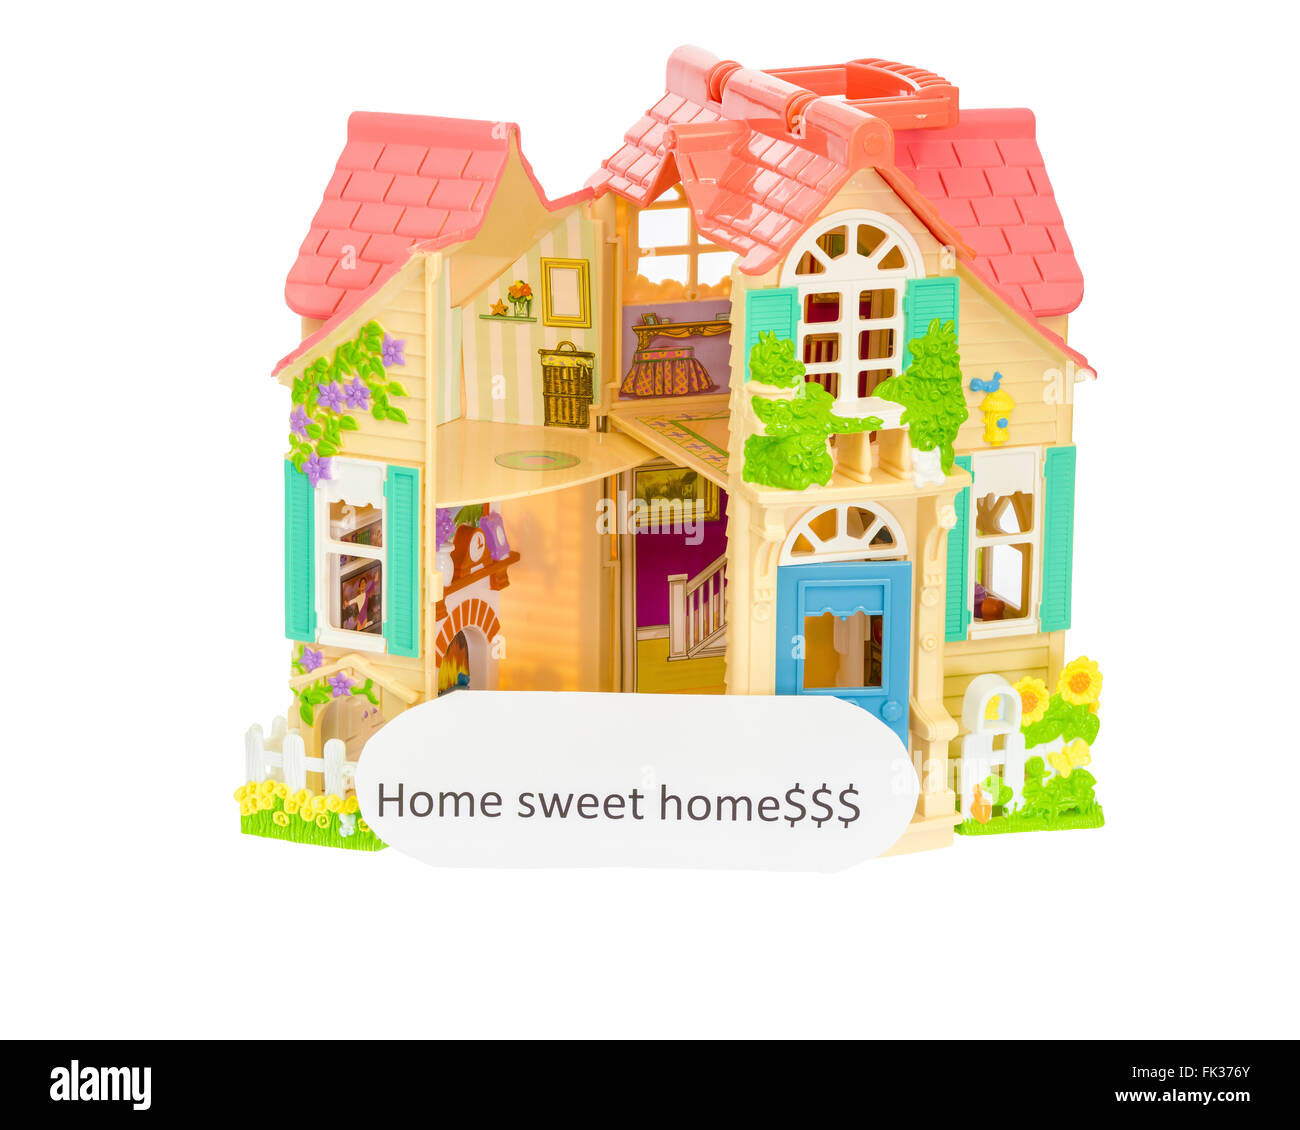 Doll House with a home sweet home sign - Stock Image